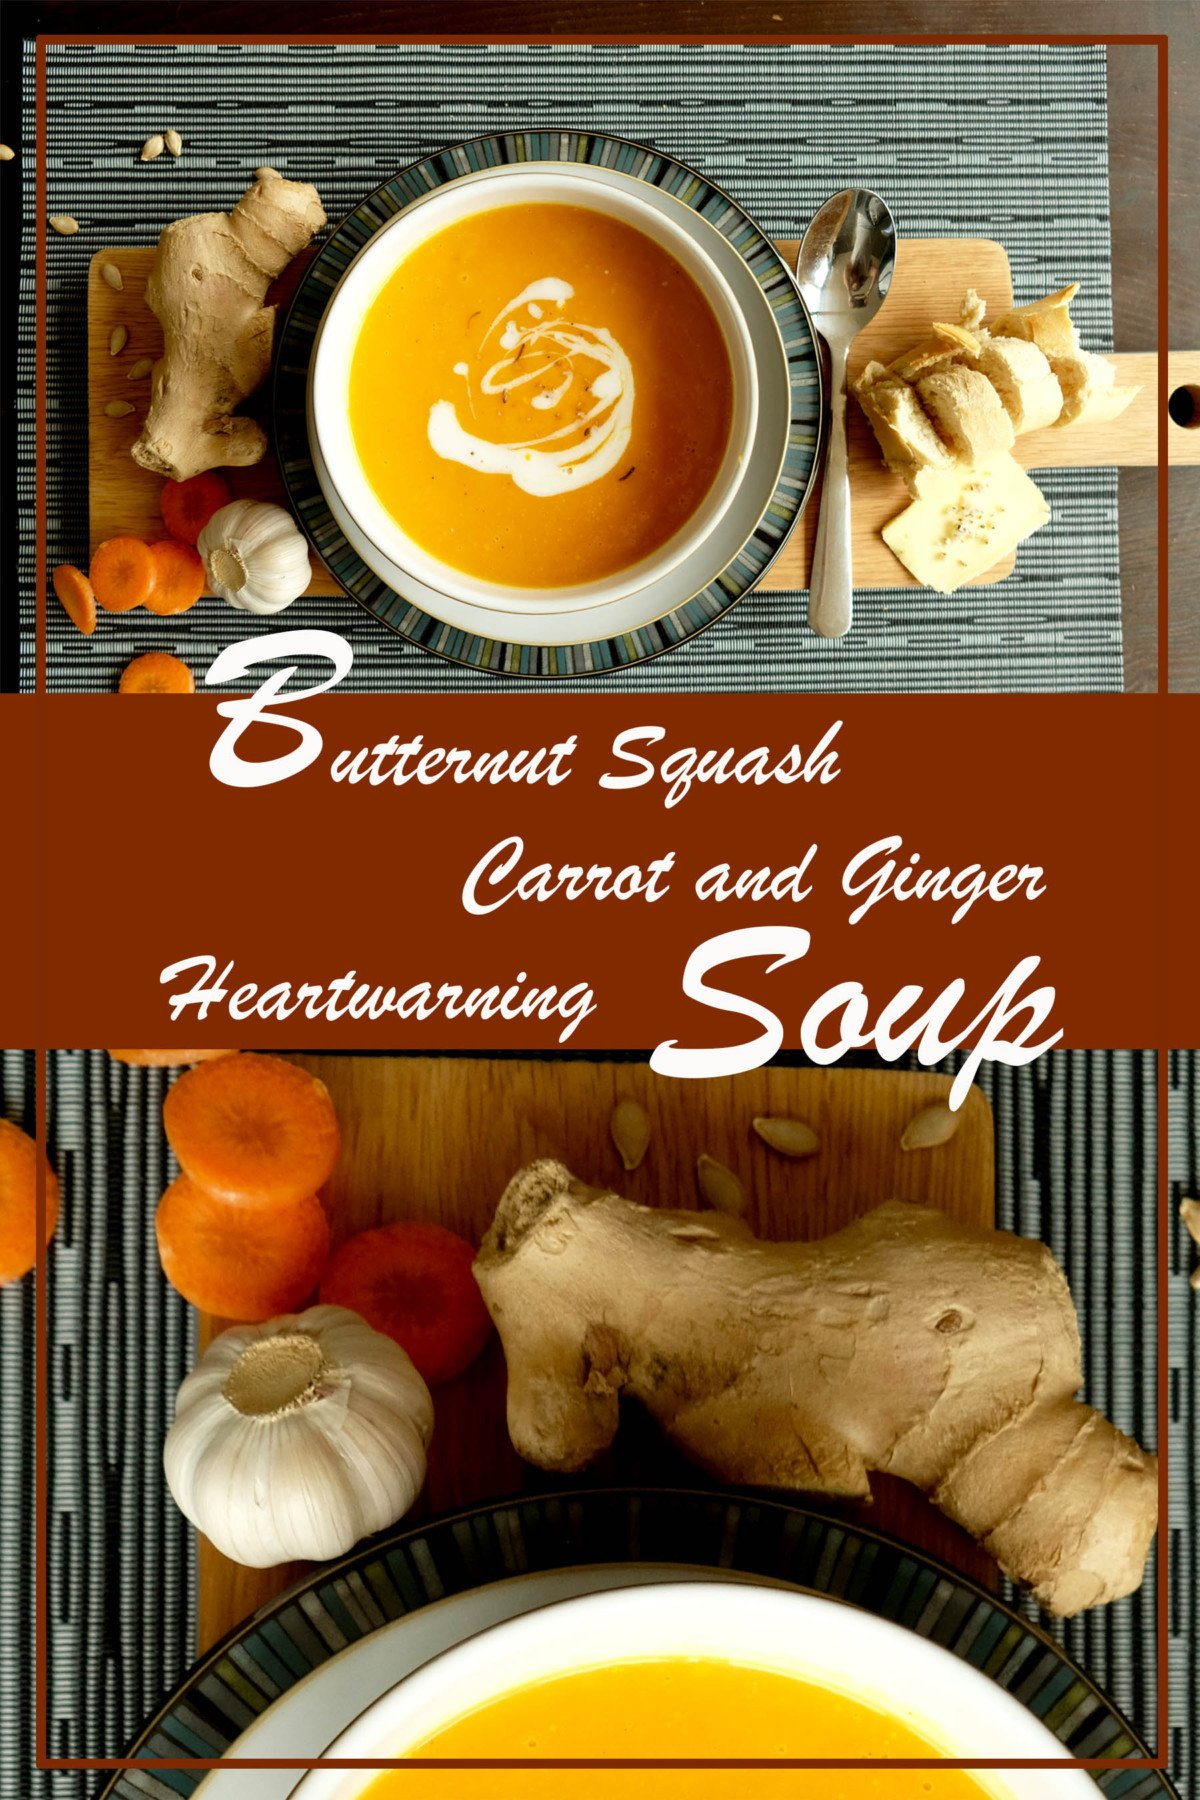 Heartwarming Butternut Squash, Carrot and Ginger Soup.